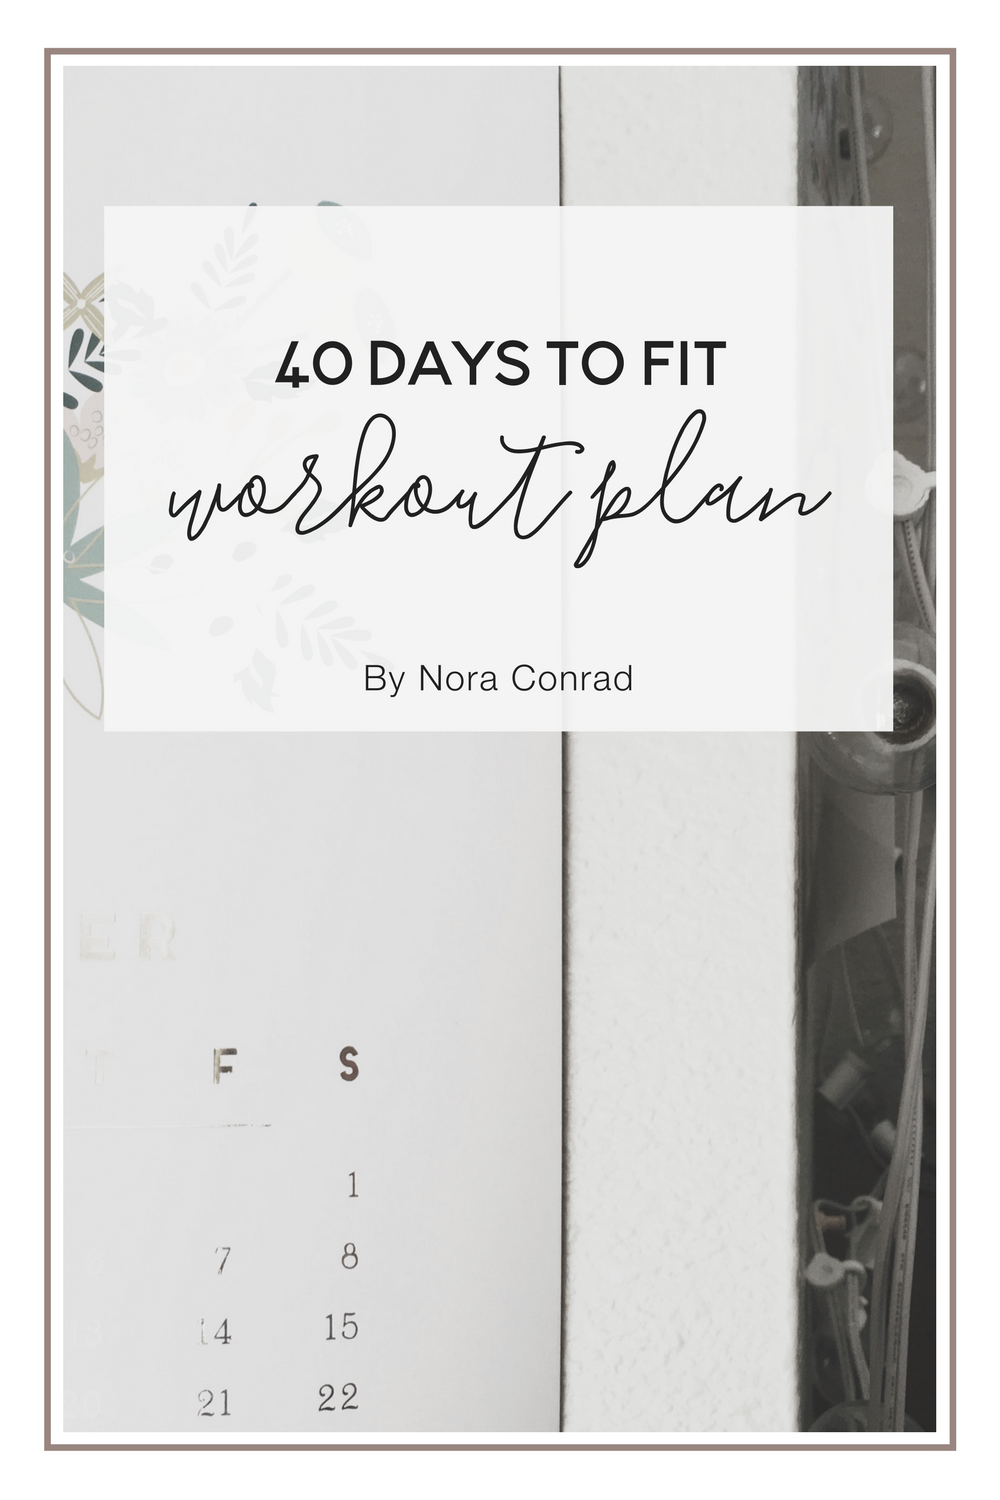 Ready to jump start your work out in just 40 days? This 40 day plan will help you get in shape and get into the habit of working out.